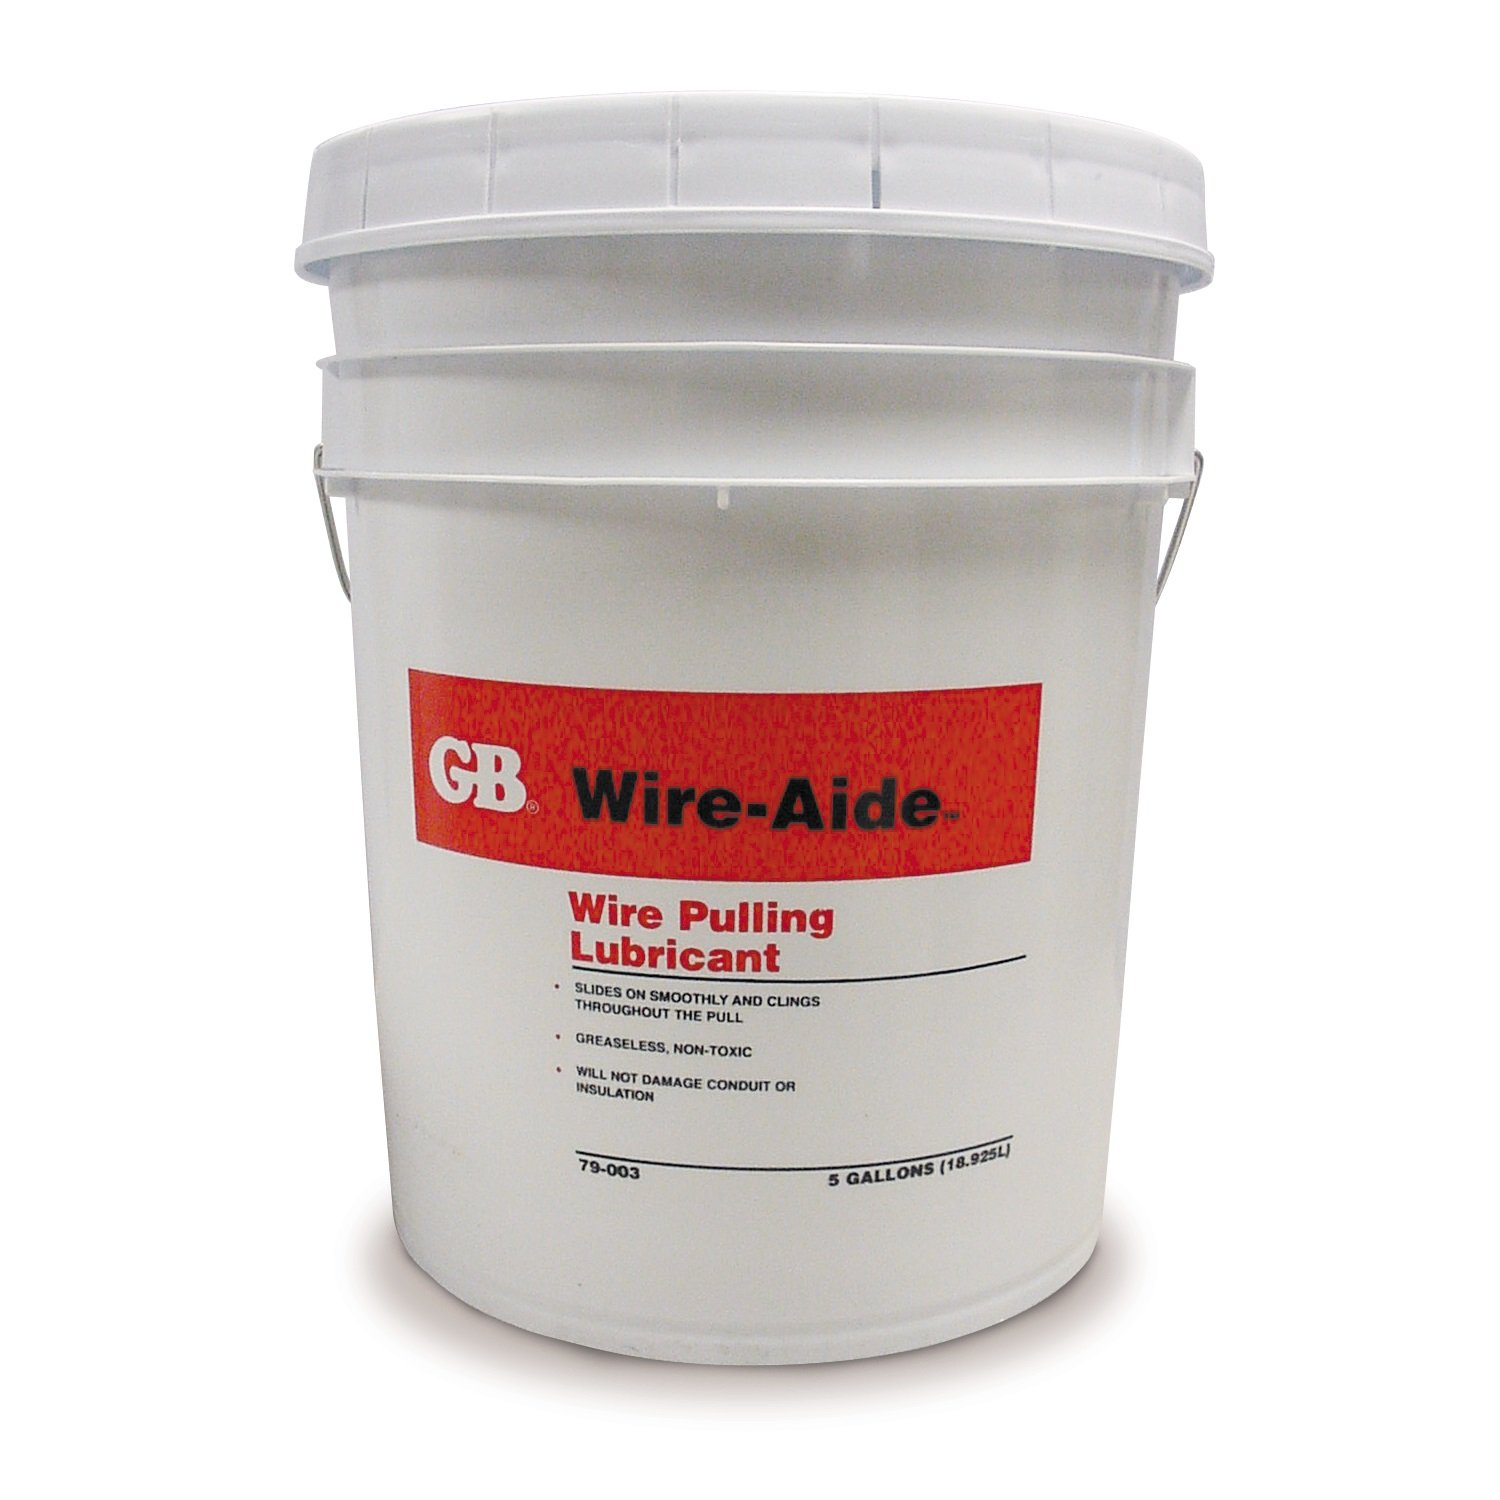 Gardner Bender 79-203 Poly-Gel, Cable Pulling Lubricant, 28° - 200°F, Dries Clear, Conduit & Fiber-Optic Cable Insulation, 5 Gal. Bucket, Blue by Gardner Bender (Image #1)